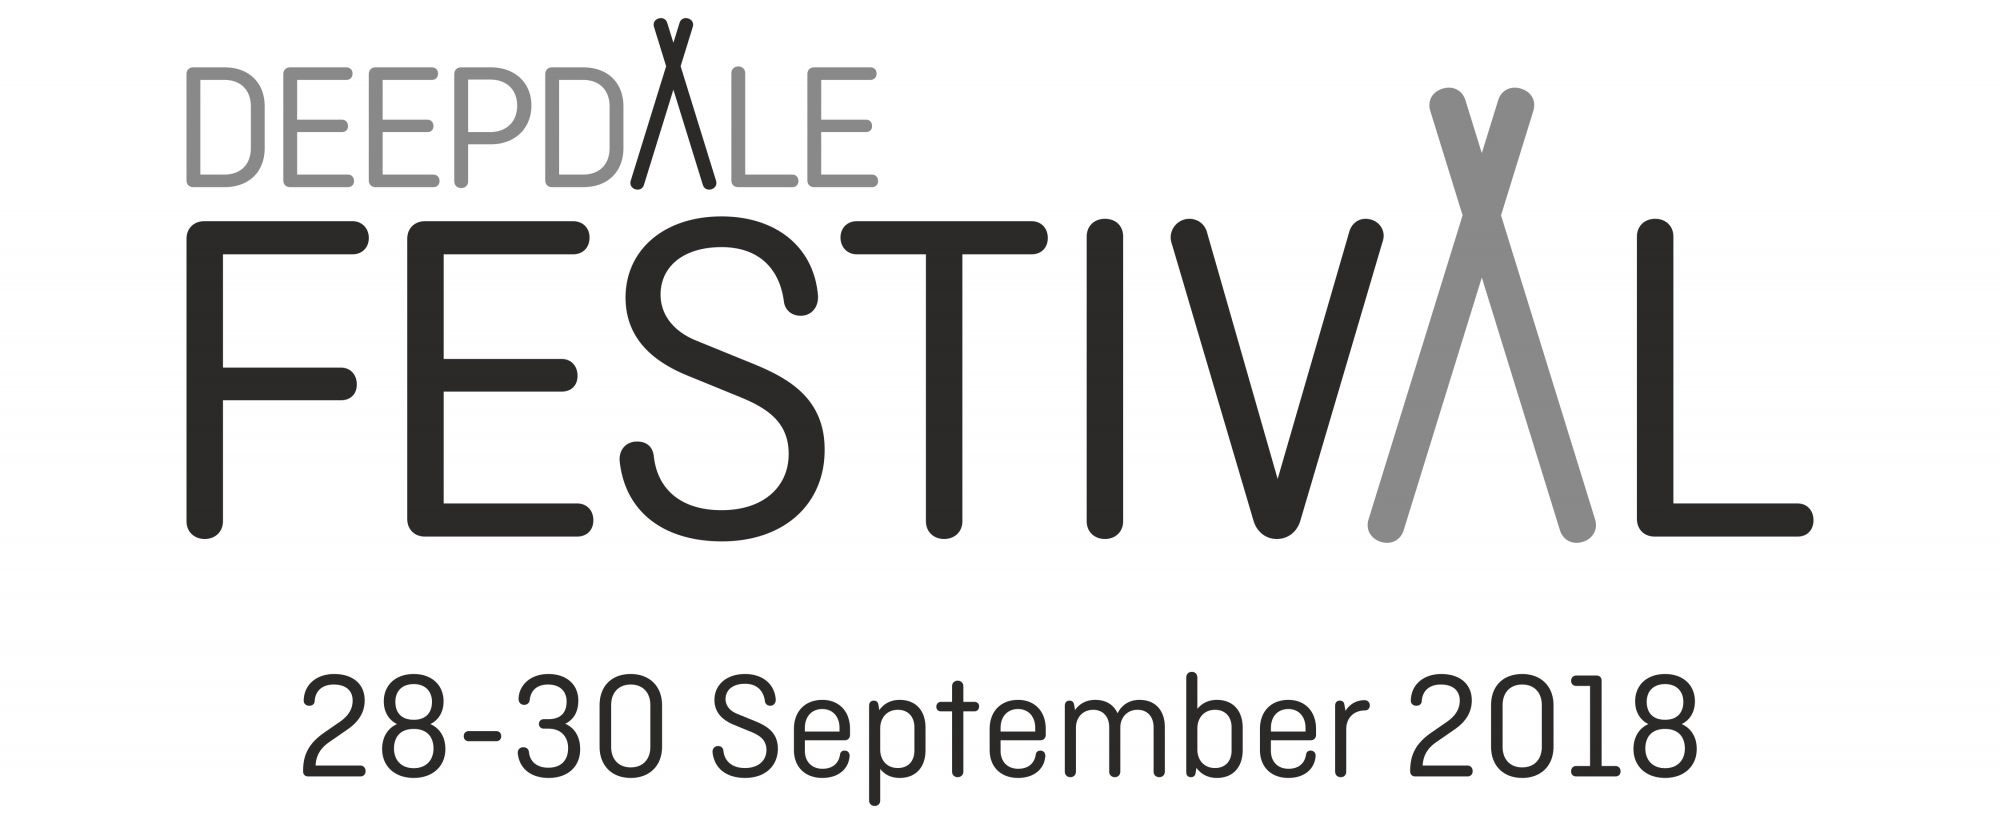 Deepdale Festival | Friday 28th to Sunday 30th September 2018